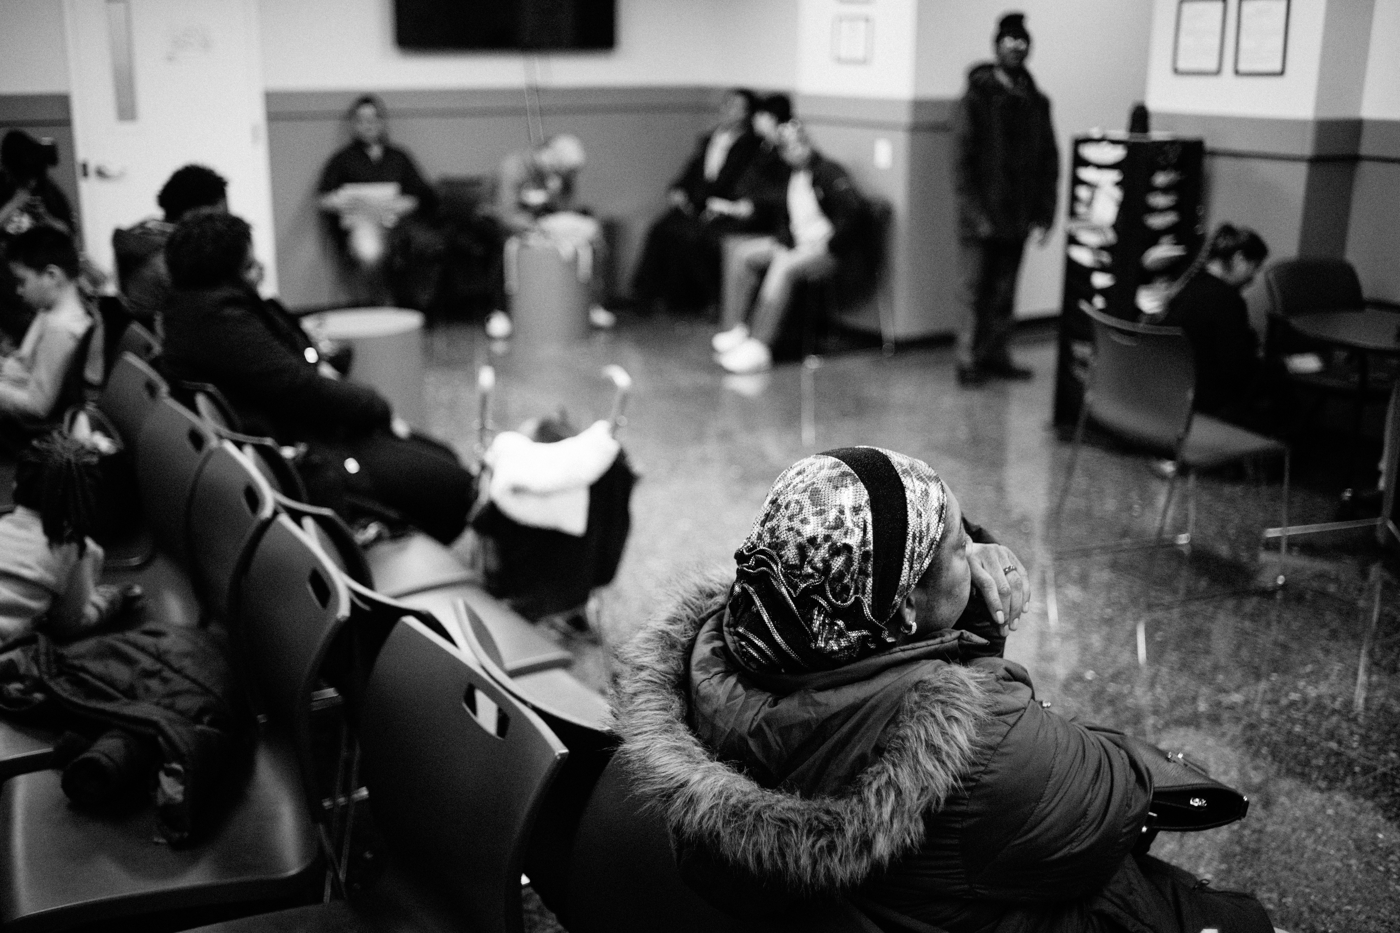 People sit in the waiting room at Catholic Charities Community Services during their walk-in hours for immigration-related legal services in New York, NY on March 9, 2017. CREDIT: Mark Kauzlarich for CNN